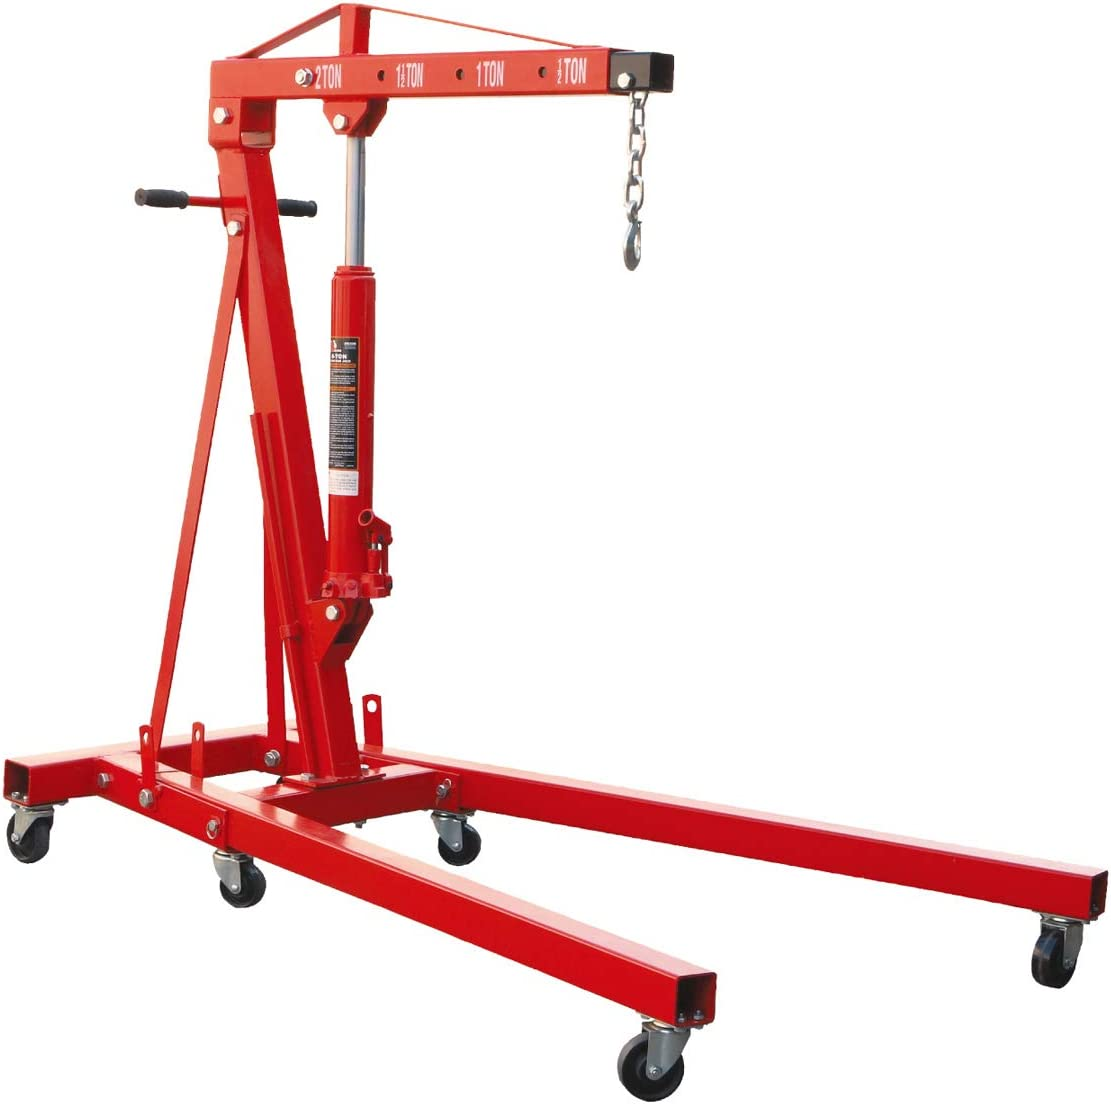 BIG RED T32001 Torin Steel Garage/Shop Crane Engine Hoist with Folding Frame, Hydraulic Long Ram Jack, and 4 Position Reinforced Boom, 2 Ton (4,000 lb) Capacity, Red